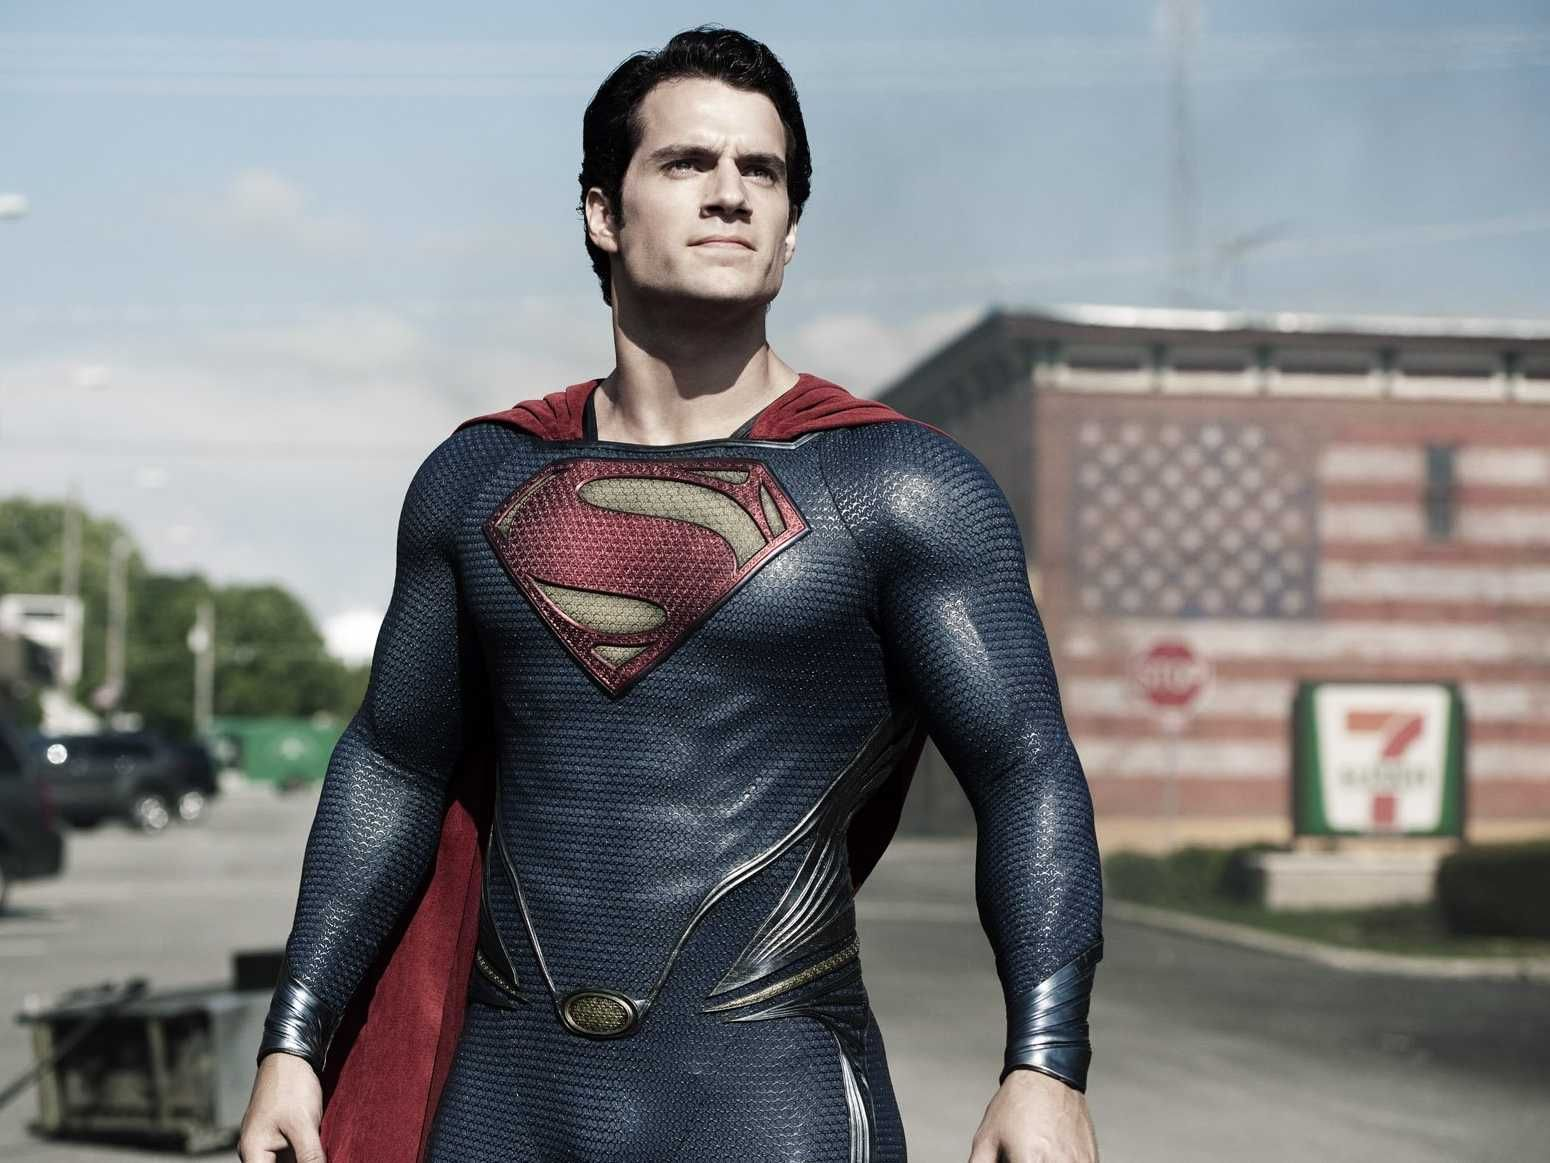 pitures of movies New Superman Movie Will Have The Most